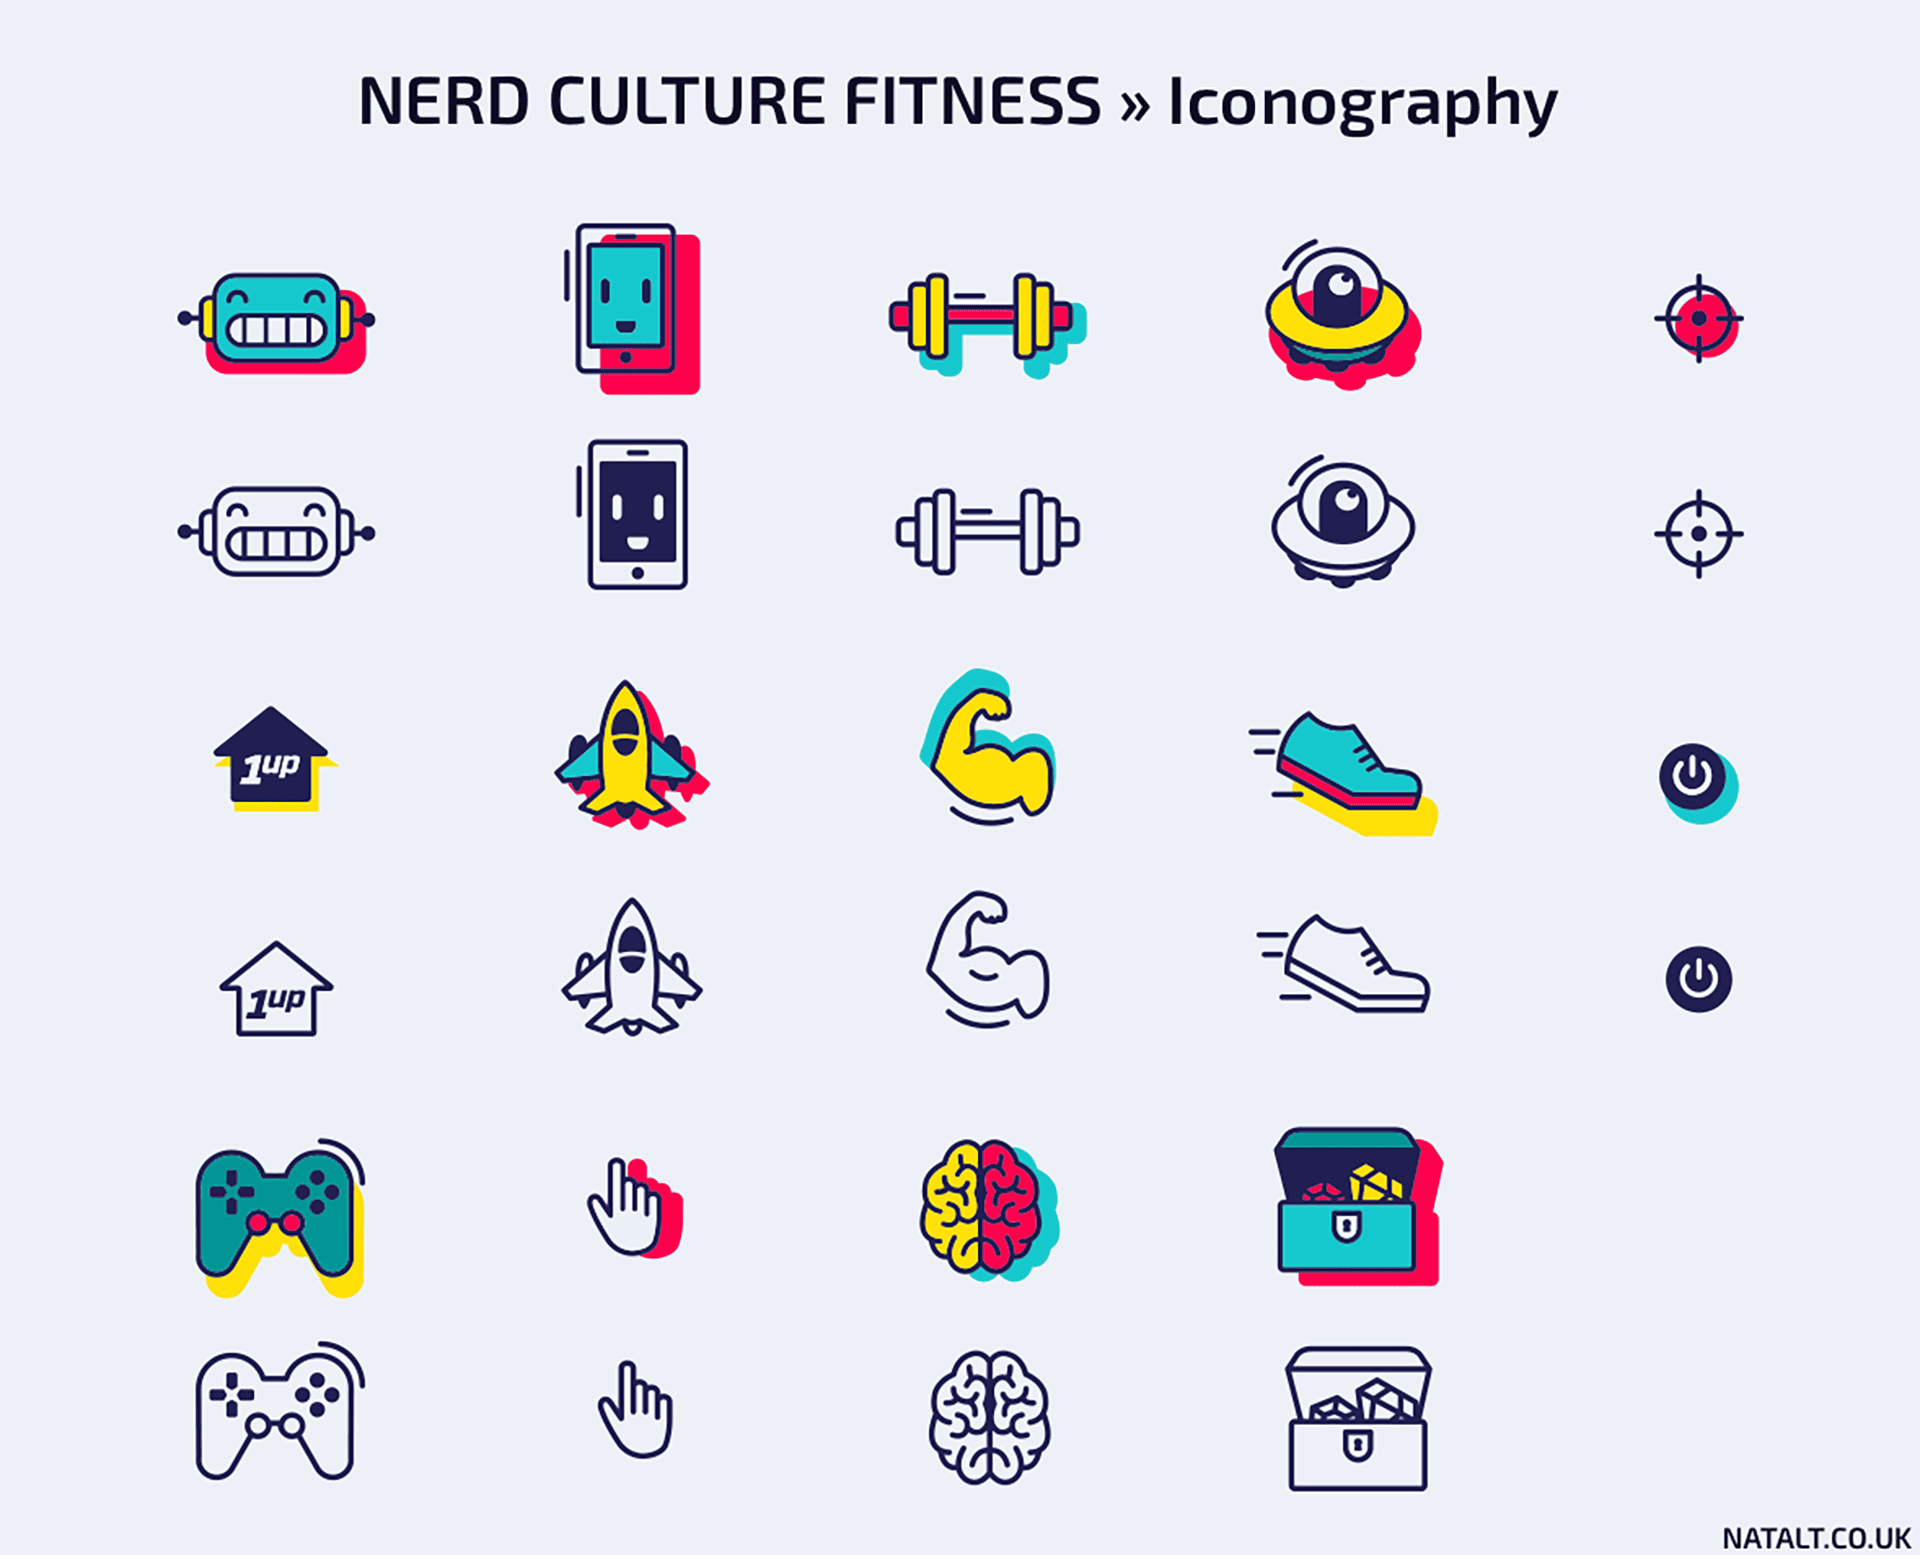 Nerd Culture Fitness iconography